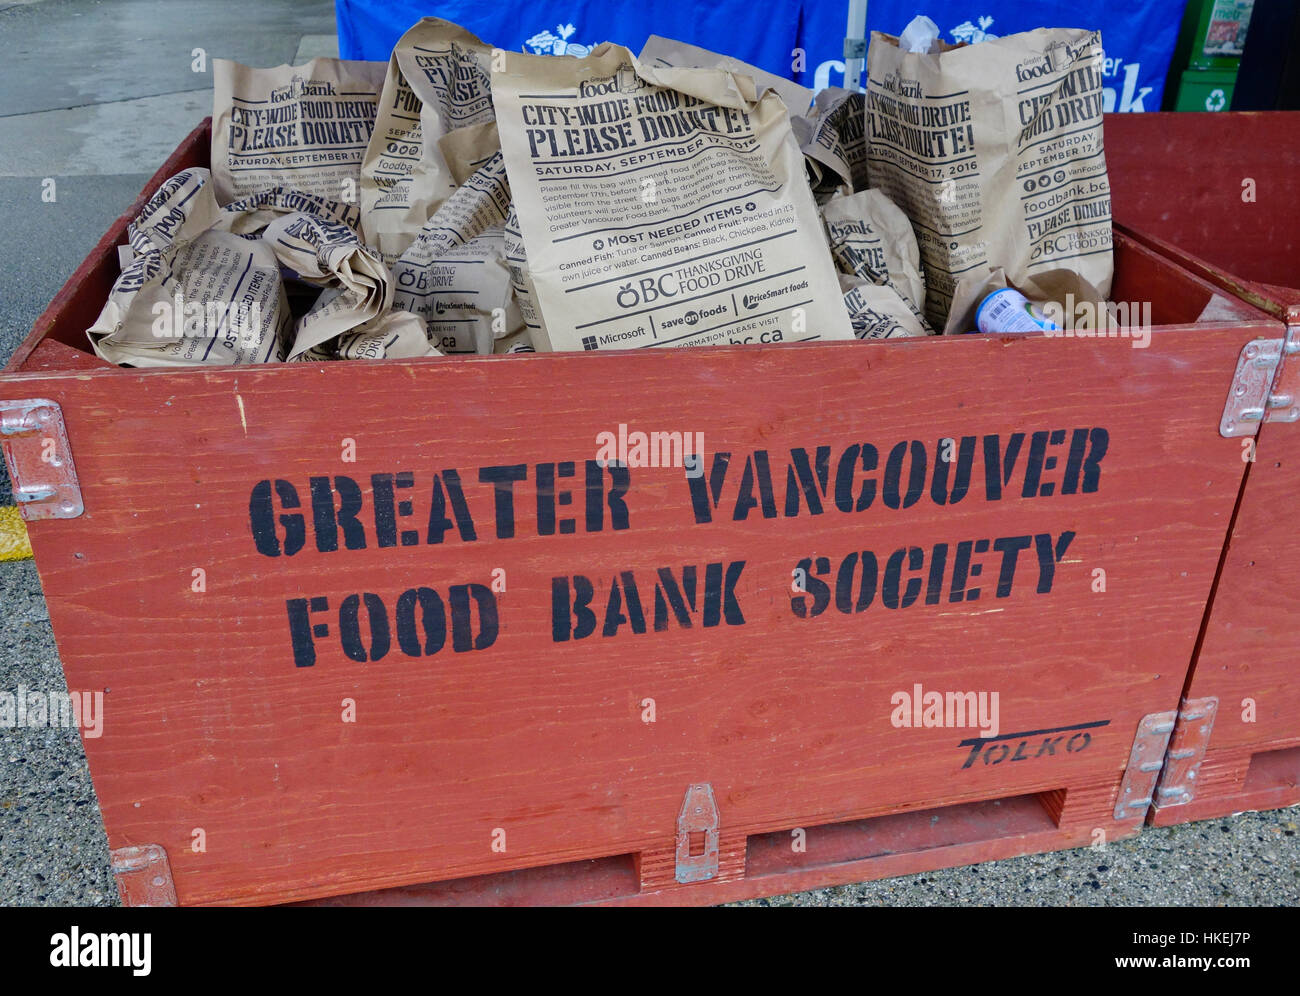 Bags of food donations fo the Greater Vancouver Food Bank Society.  During one of their food drives in September - Stock Image